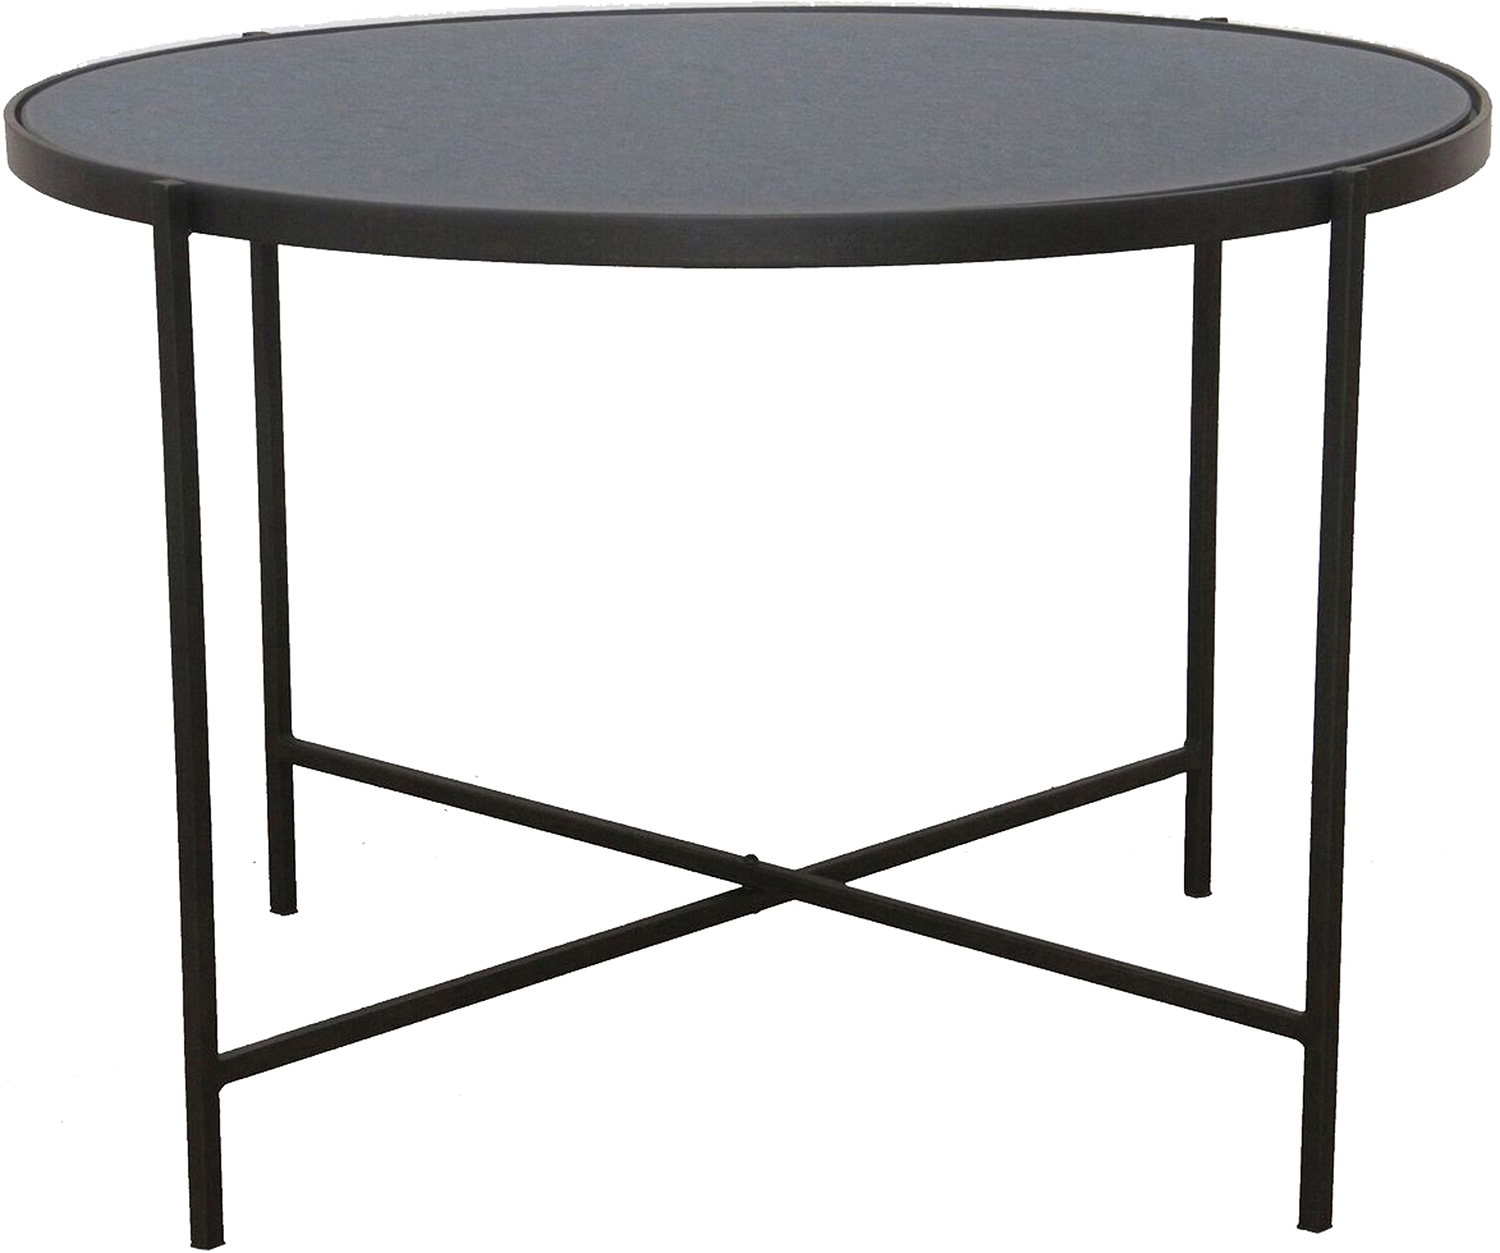 Ren-Wil Brantley Coffee Table - Black Powdercoat